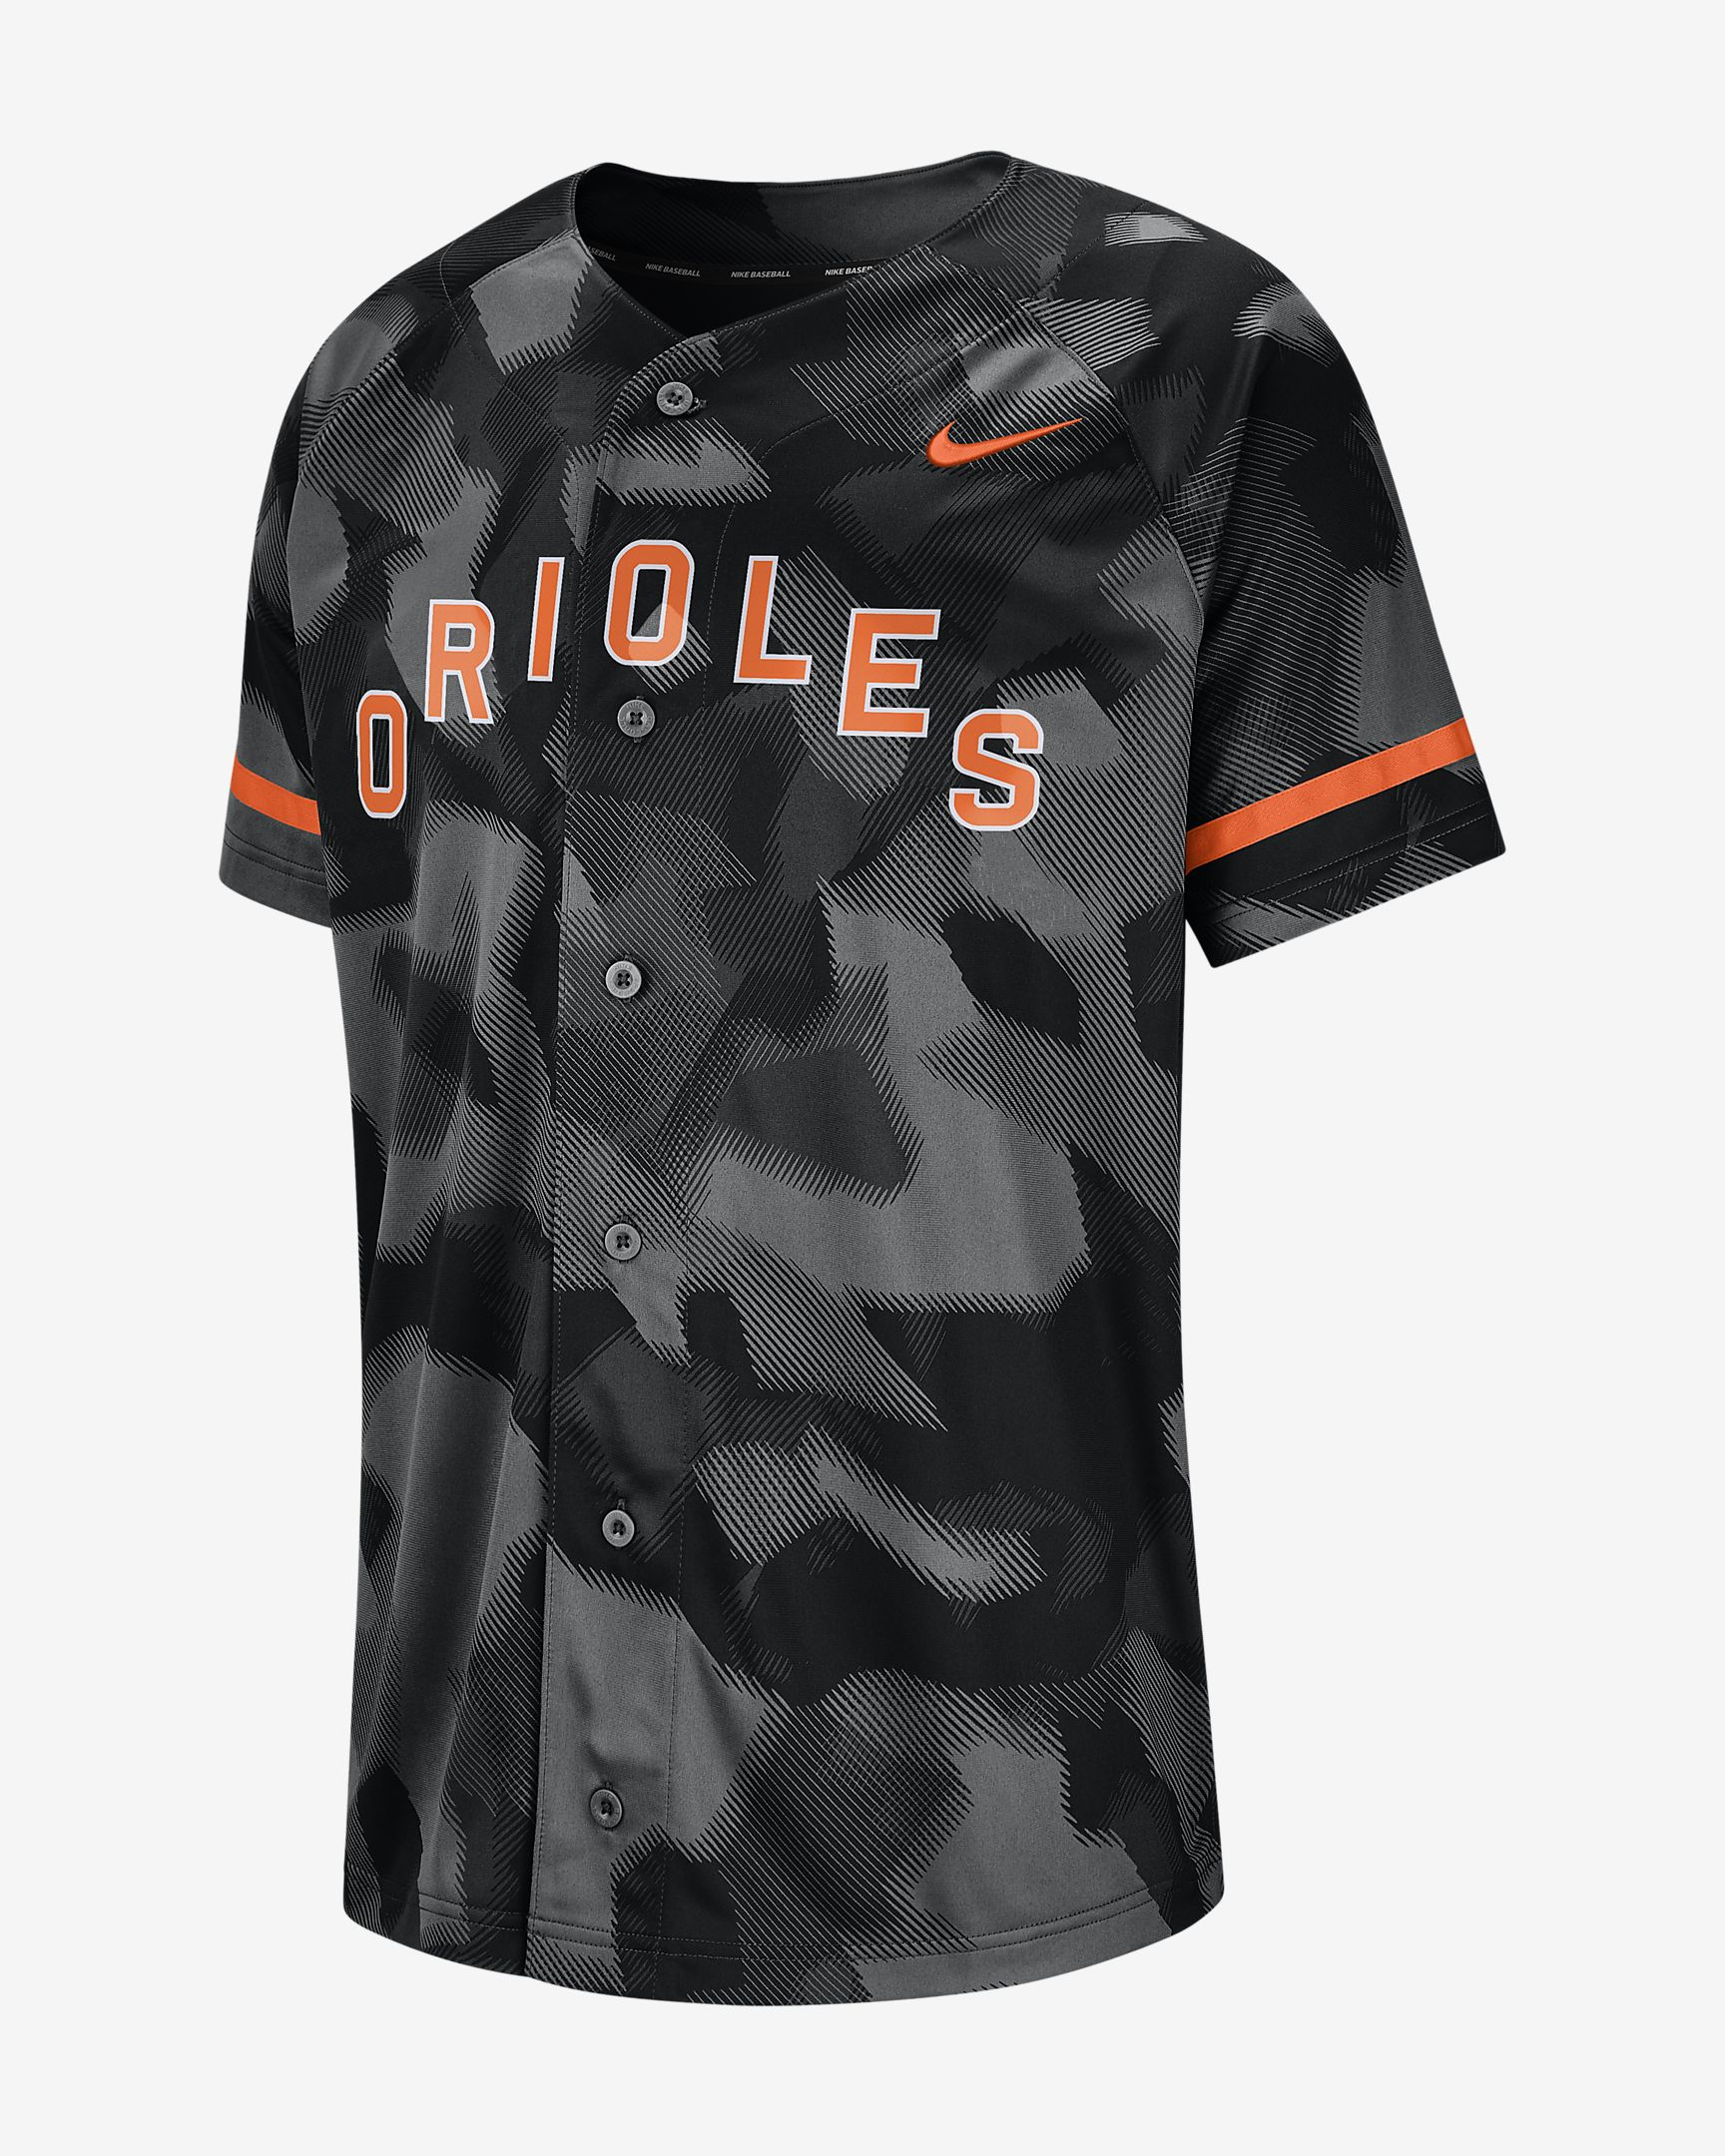 dri-fit-orioles-mens-baseball-jersey-3Ct